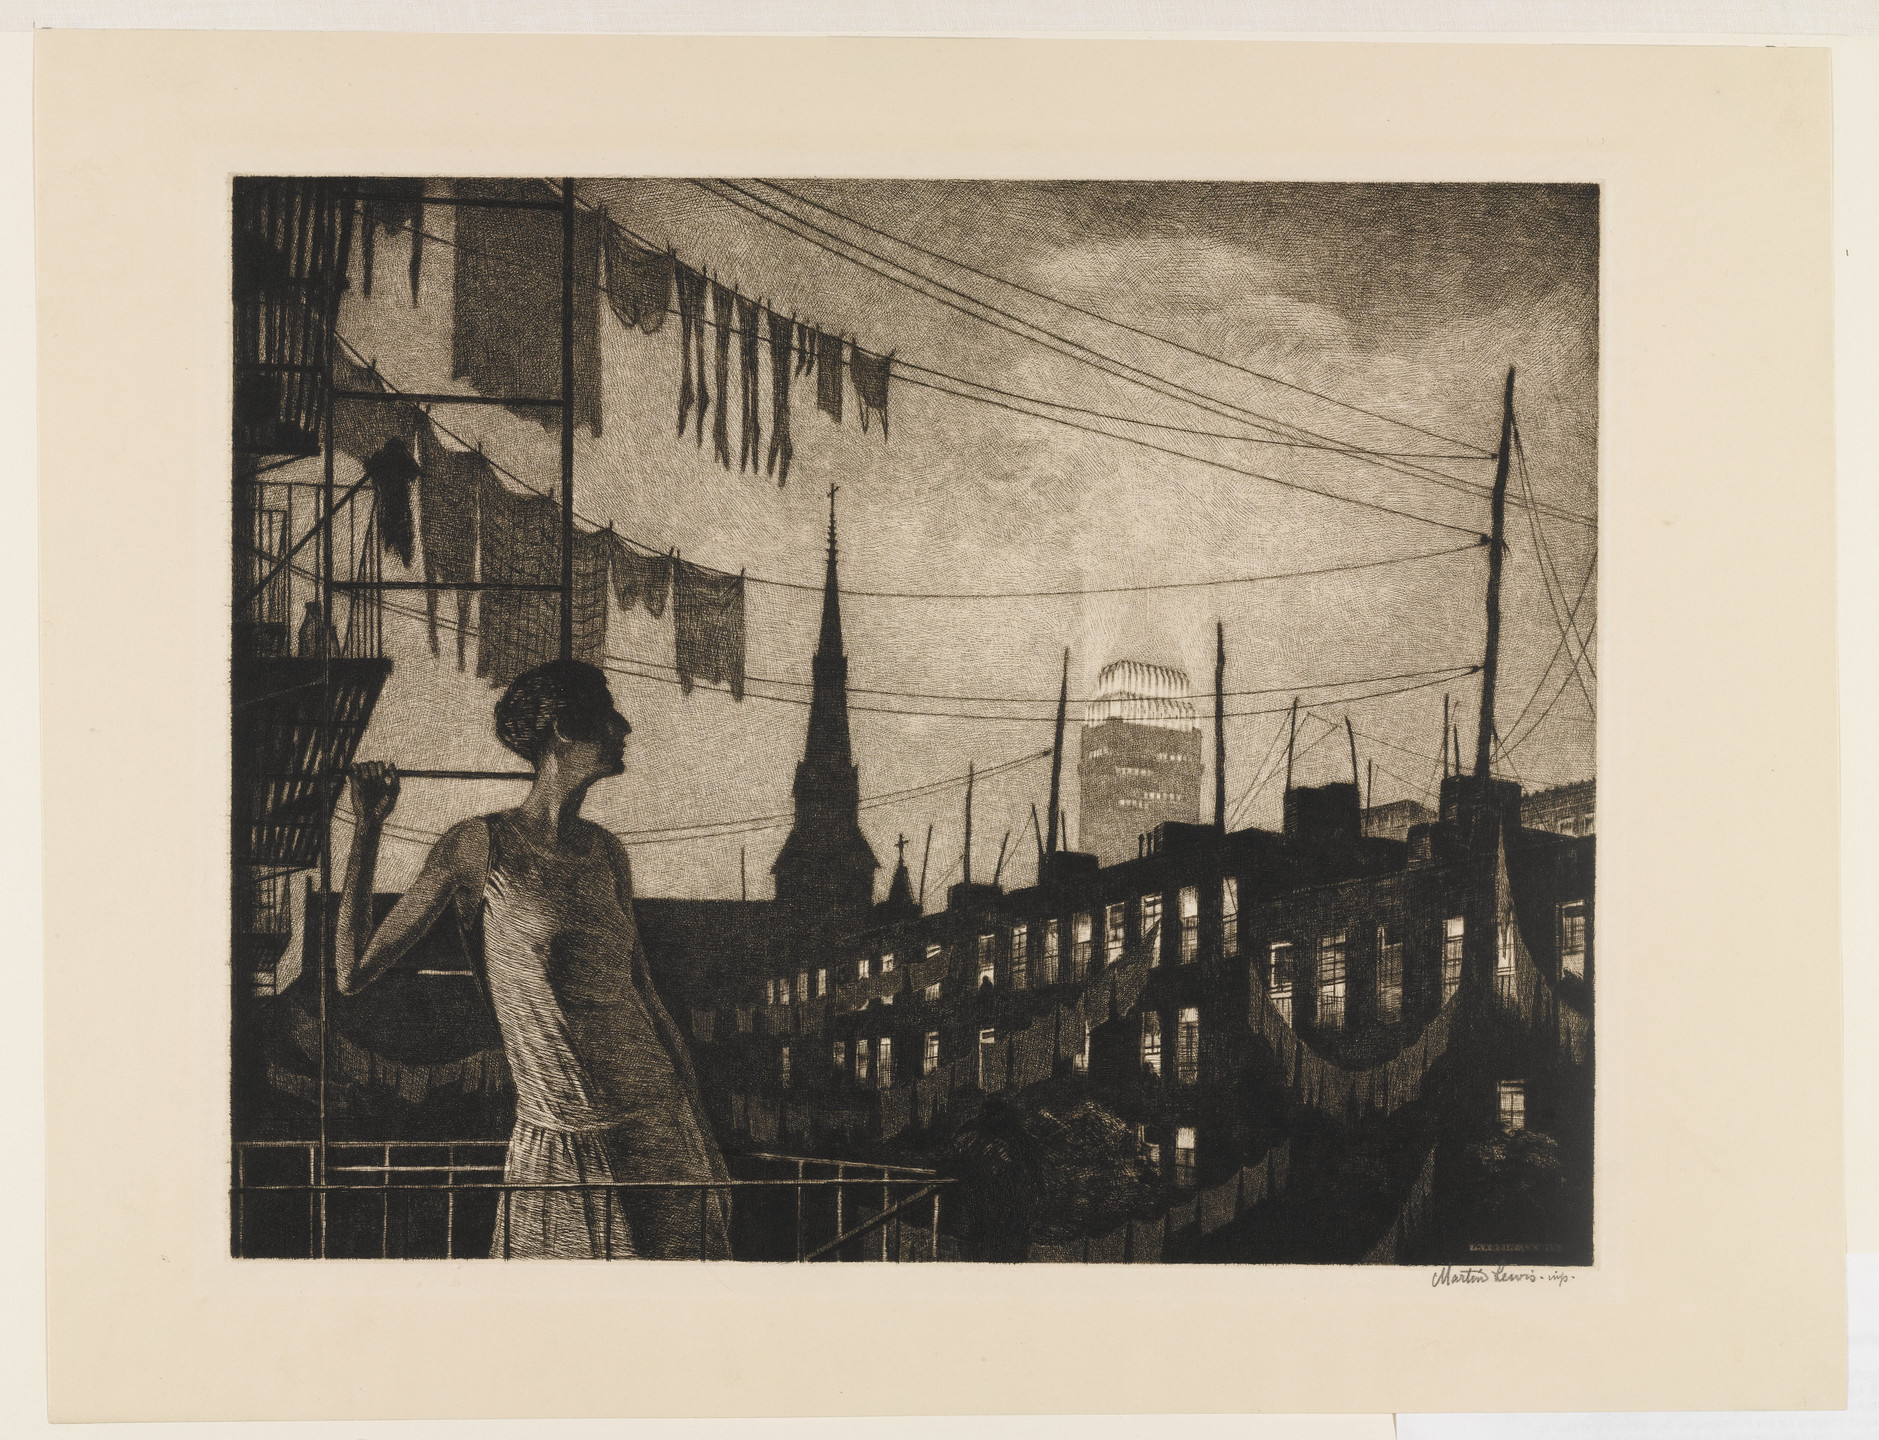 Martin Lewis. The Glow of the City. 1929